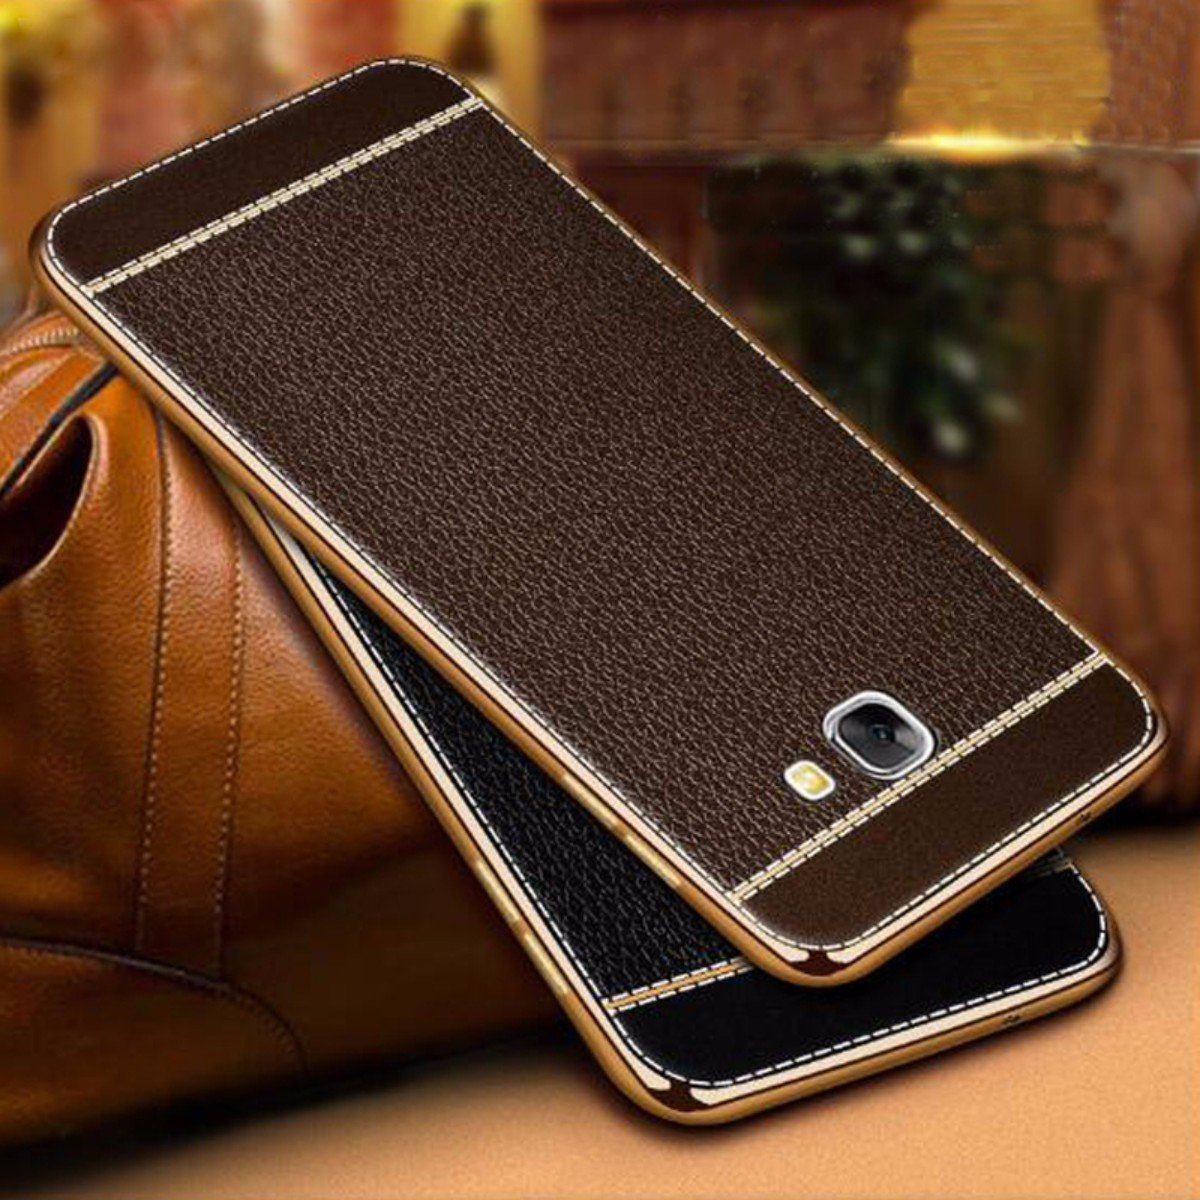 Norby Electroplated Gold Side Chrome with Leather Looks Soft Case Ultra  Thin Back Cover Case for Samsung Galaxy J7 Prime (Brown)